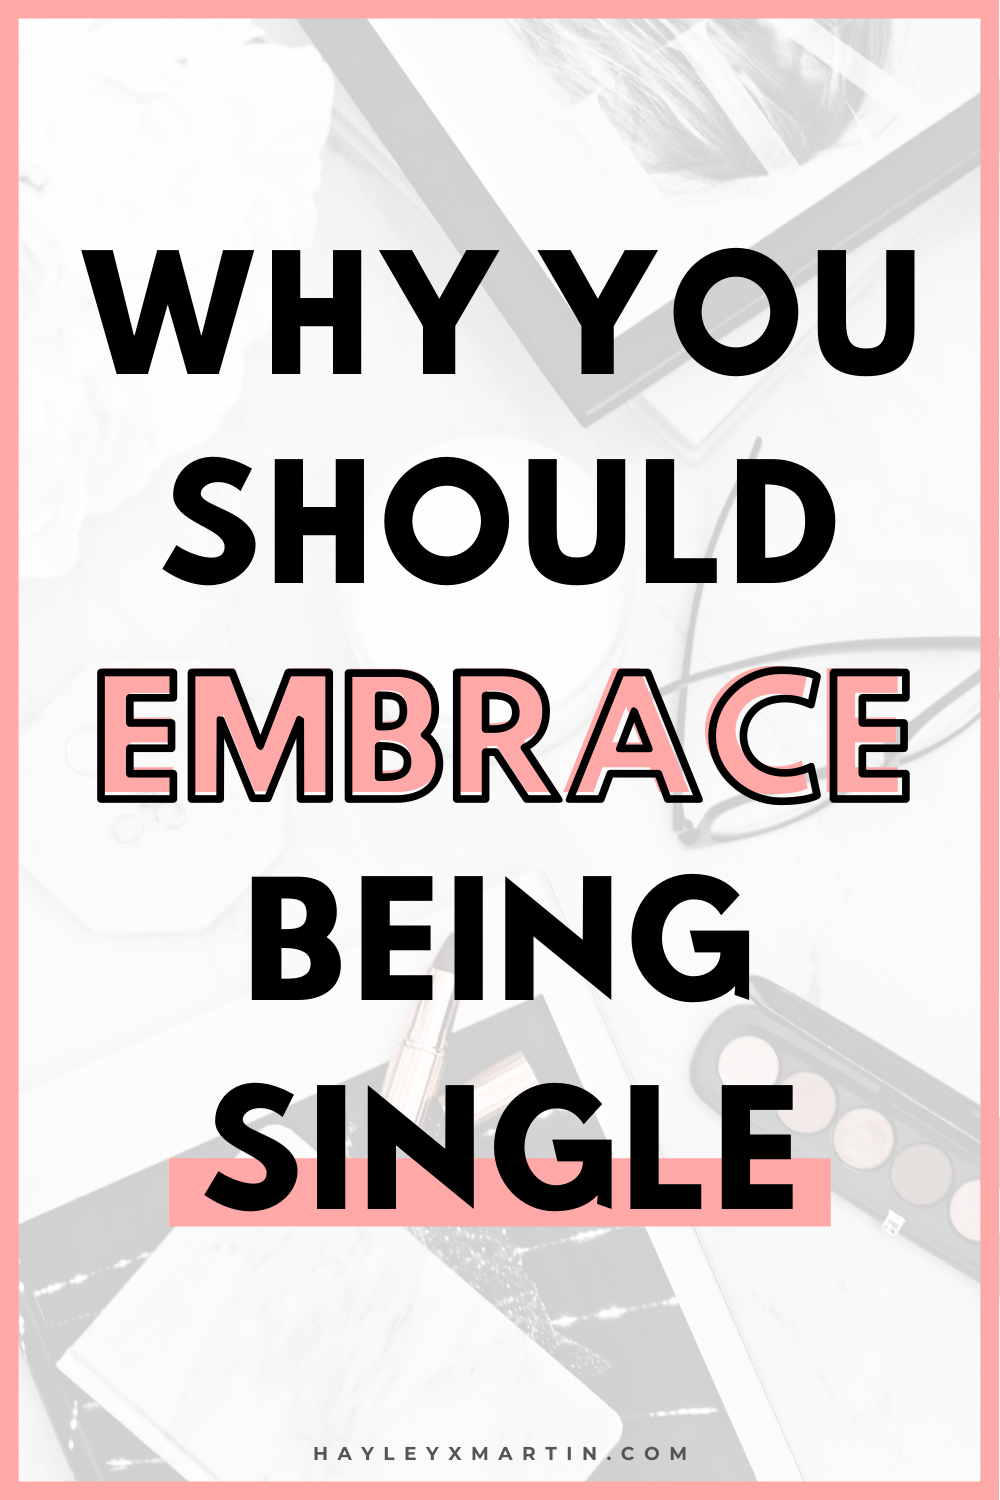 WHY YOU SHOULD EMBRACE BEING SINGLE | HAYLEYXMARTIN